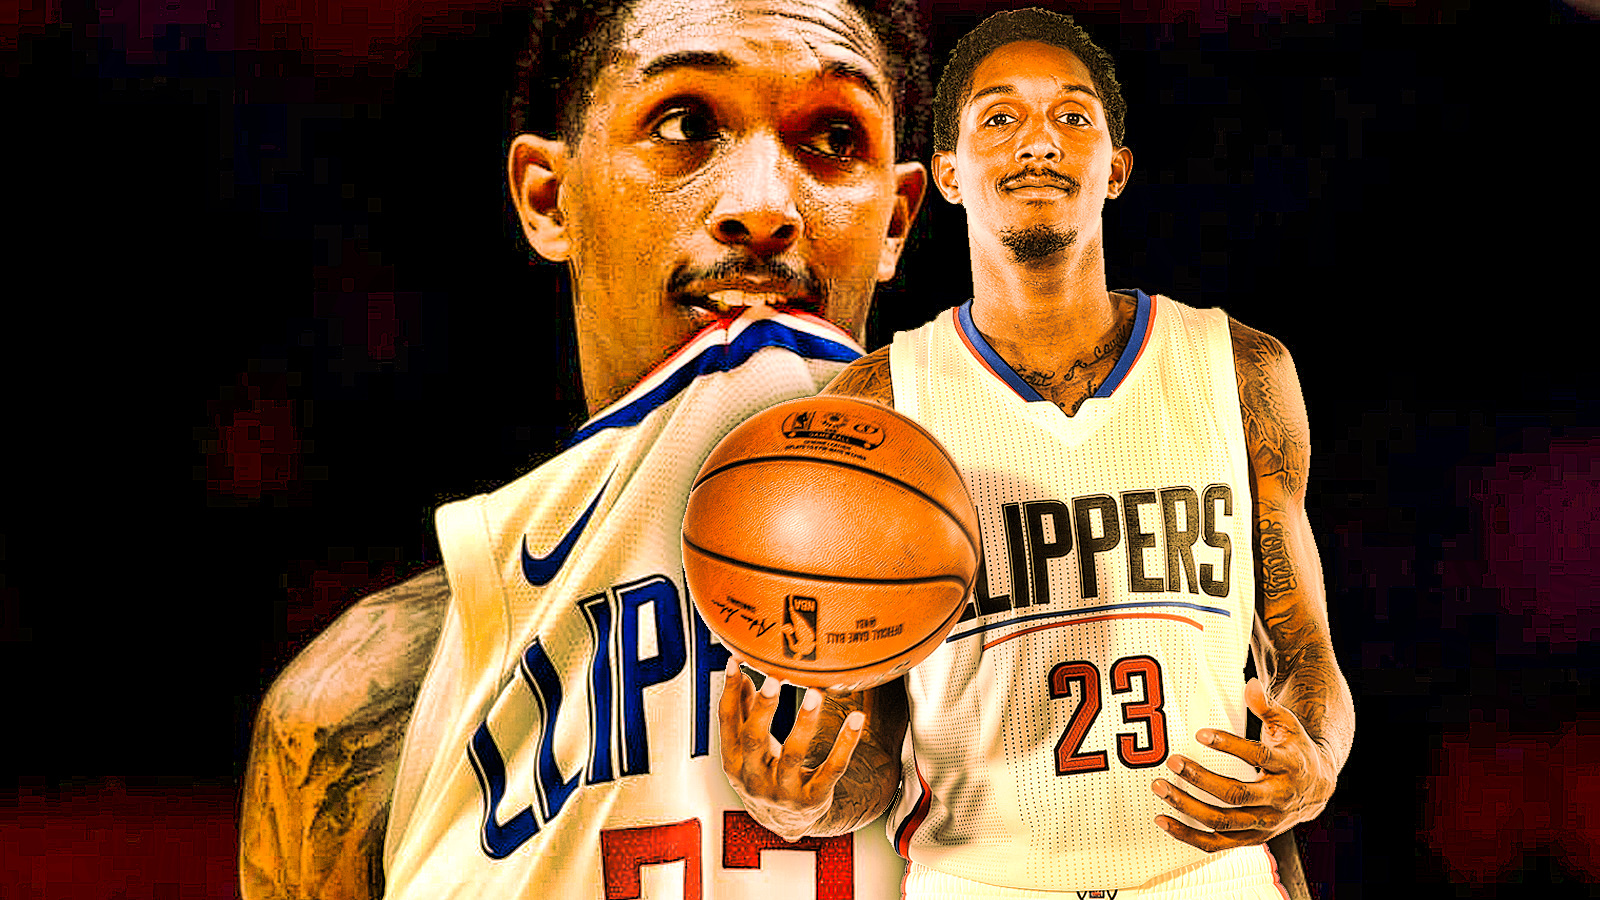 The 6th Man of the Year is… Overrated